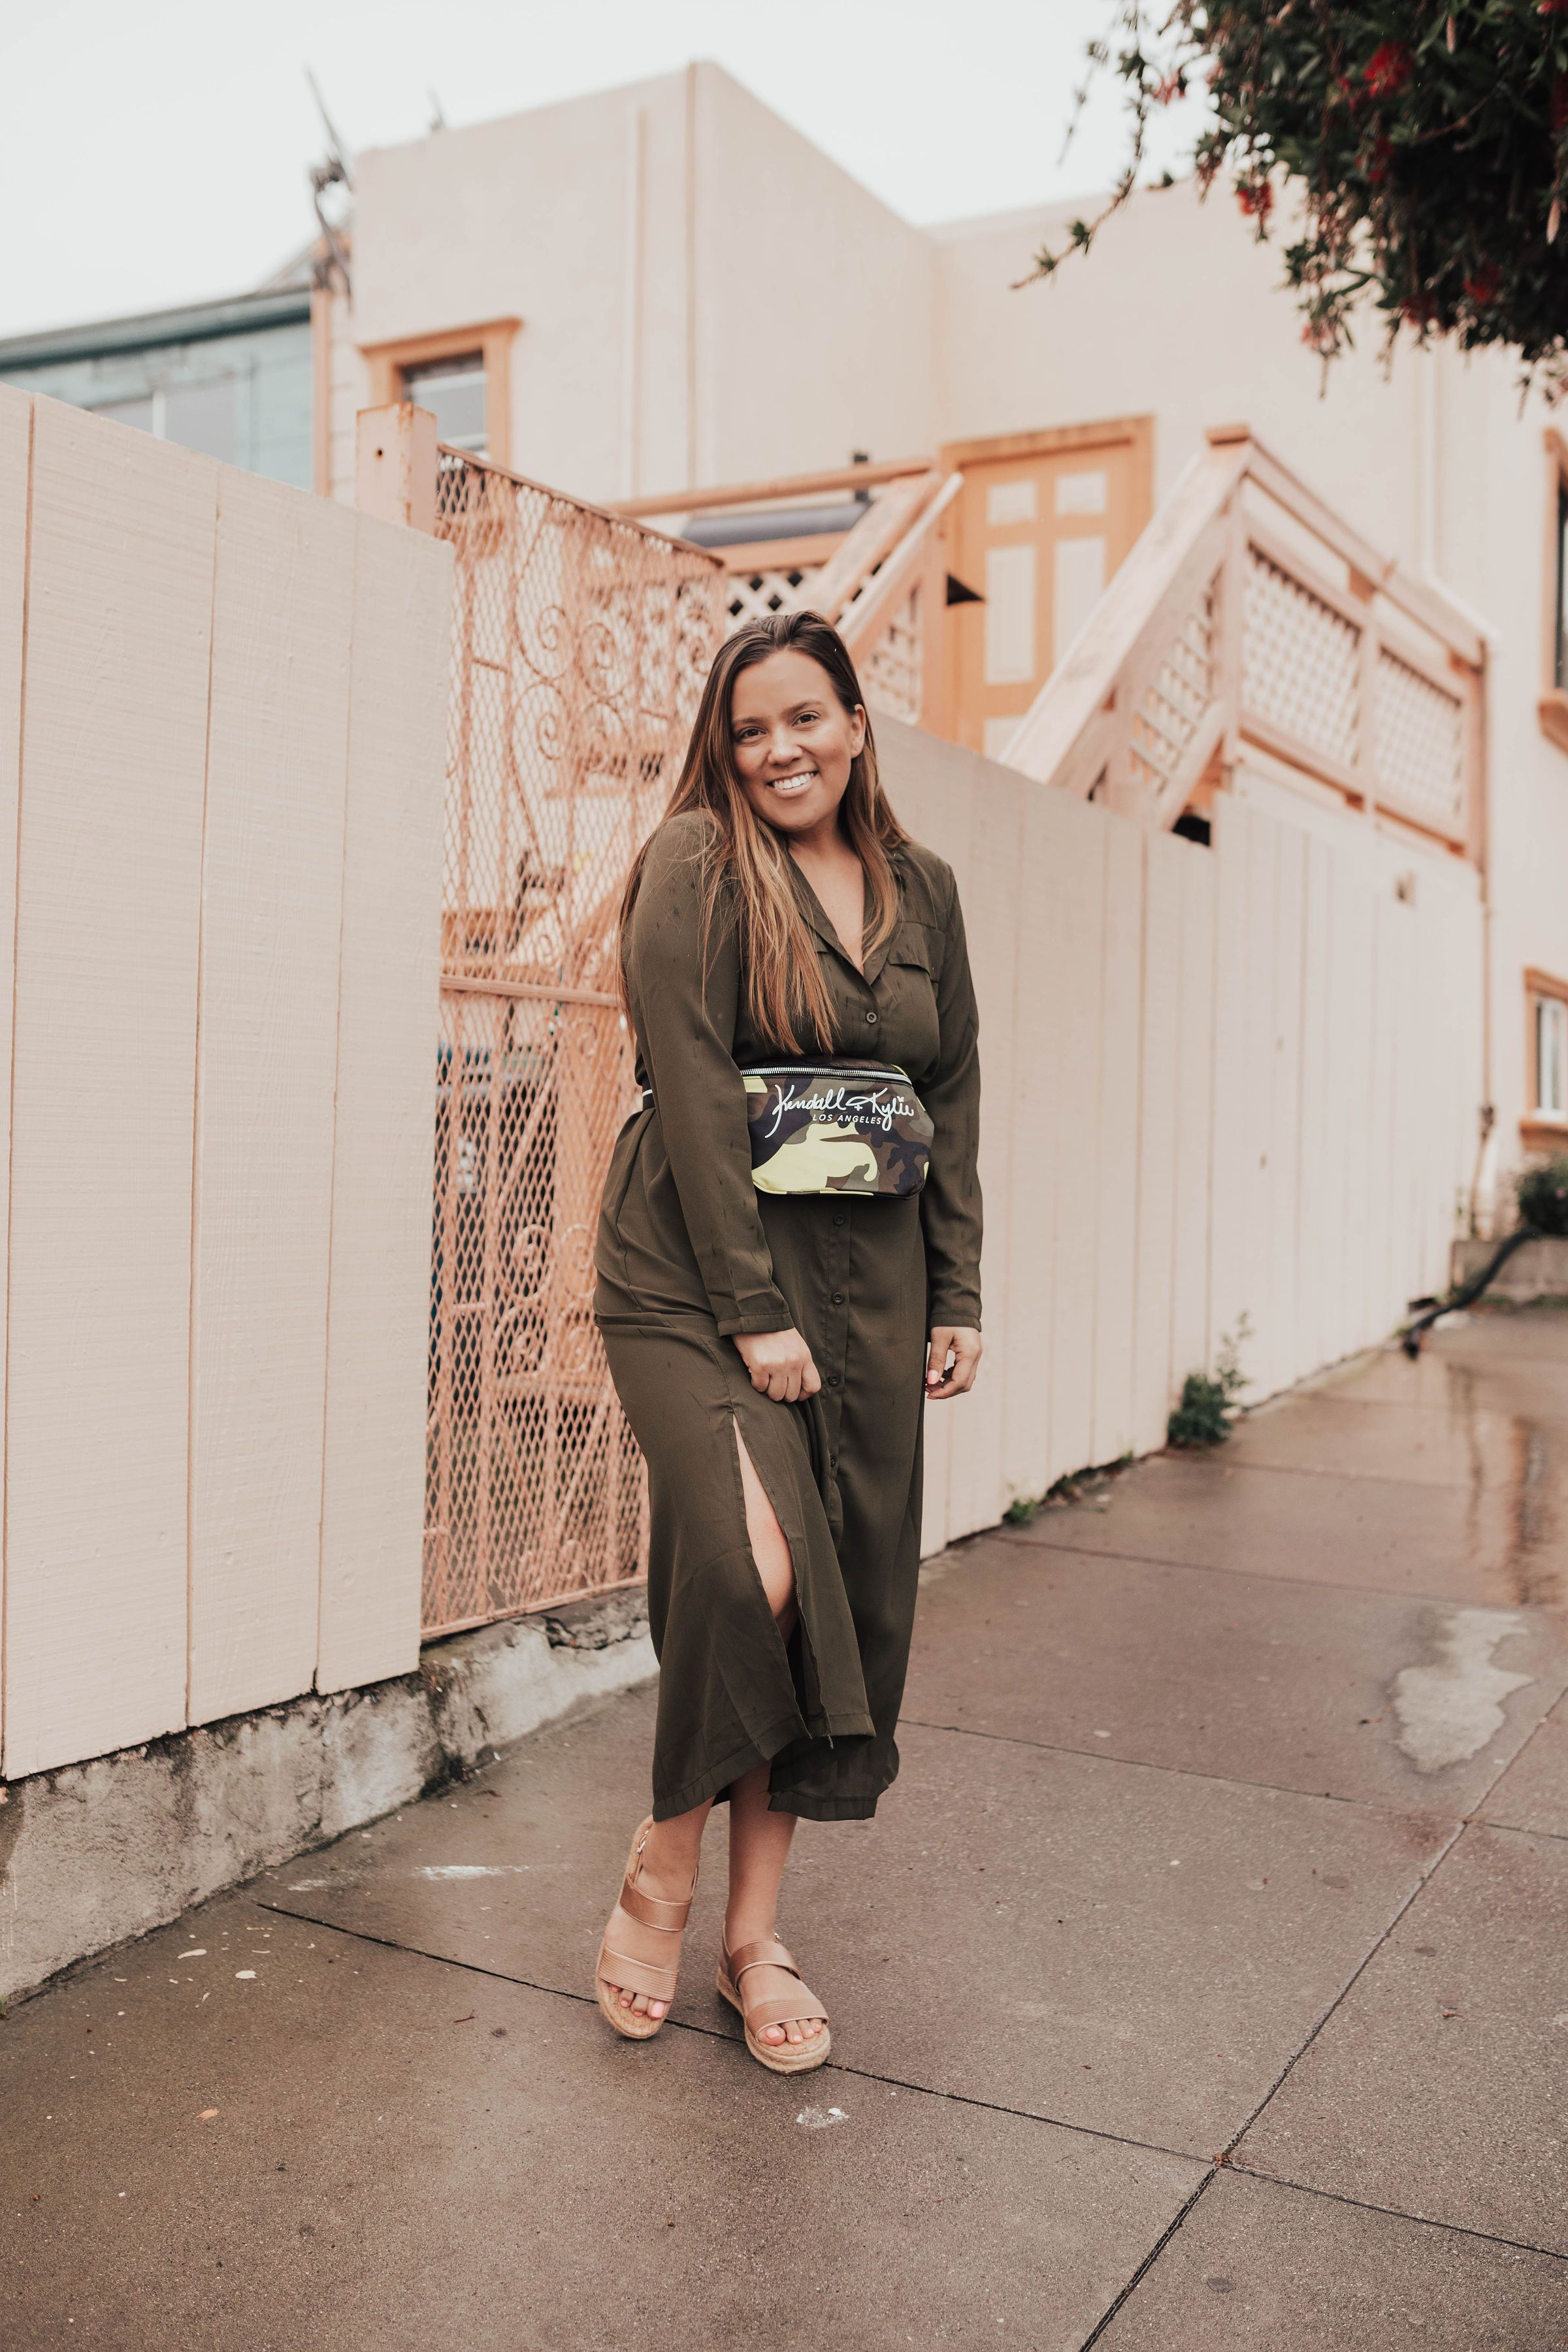 418abcb7f668 San Francisco fashion blogger, Ashley Zeal from Two Peas in a Prada shares  a trendy